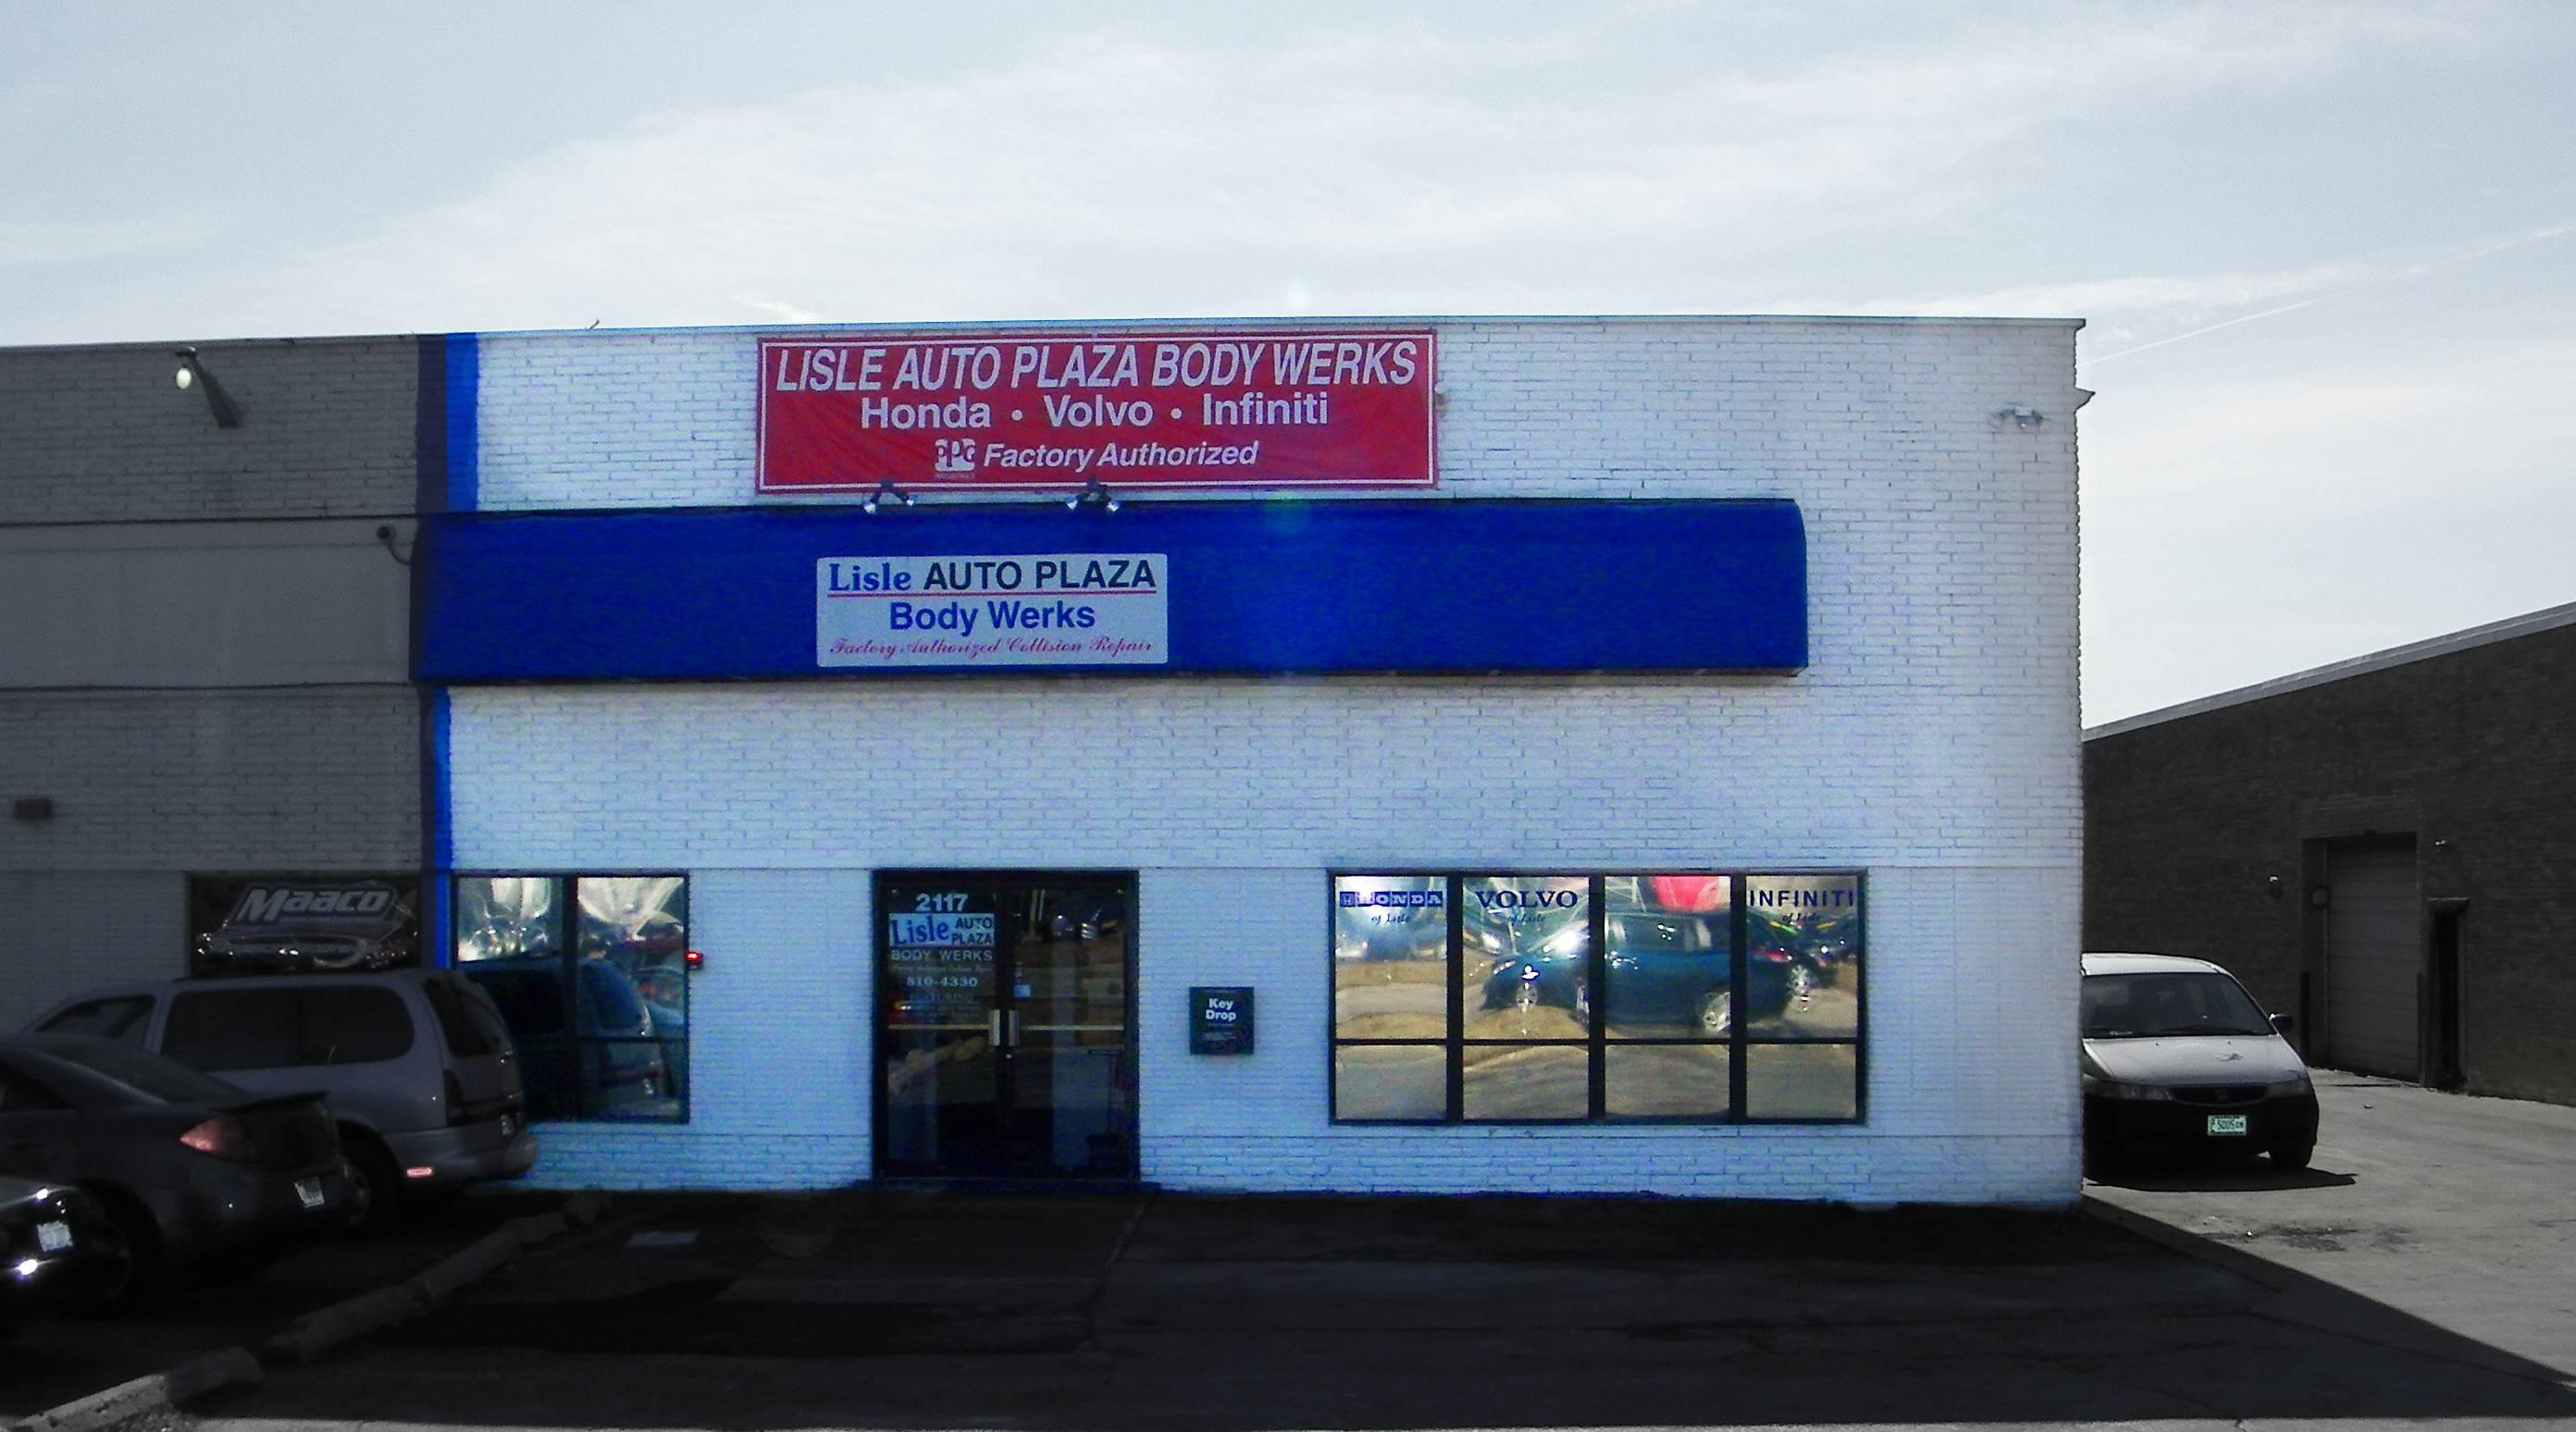 Honda auto body repair honda of lisle for Honda of lisle service